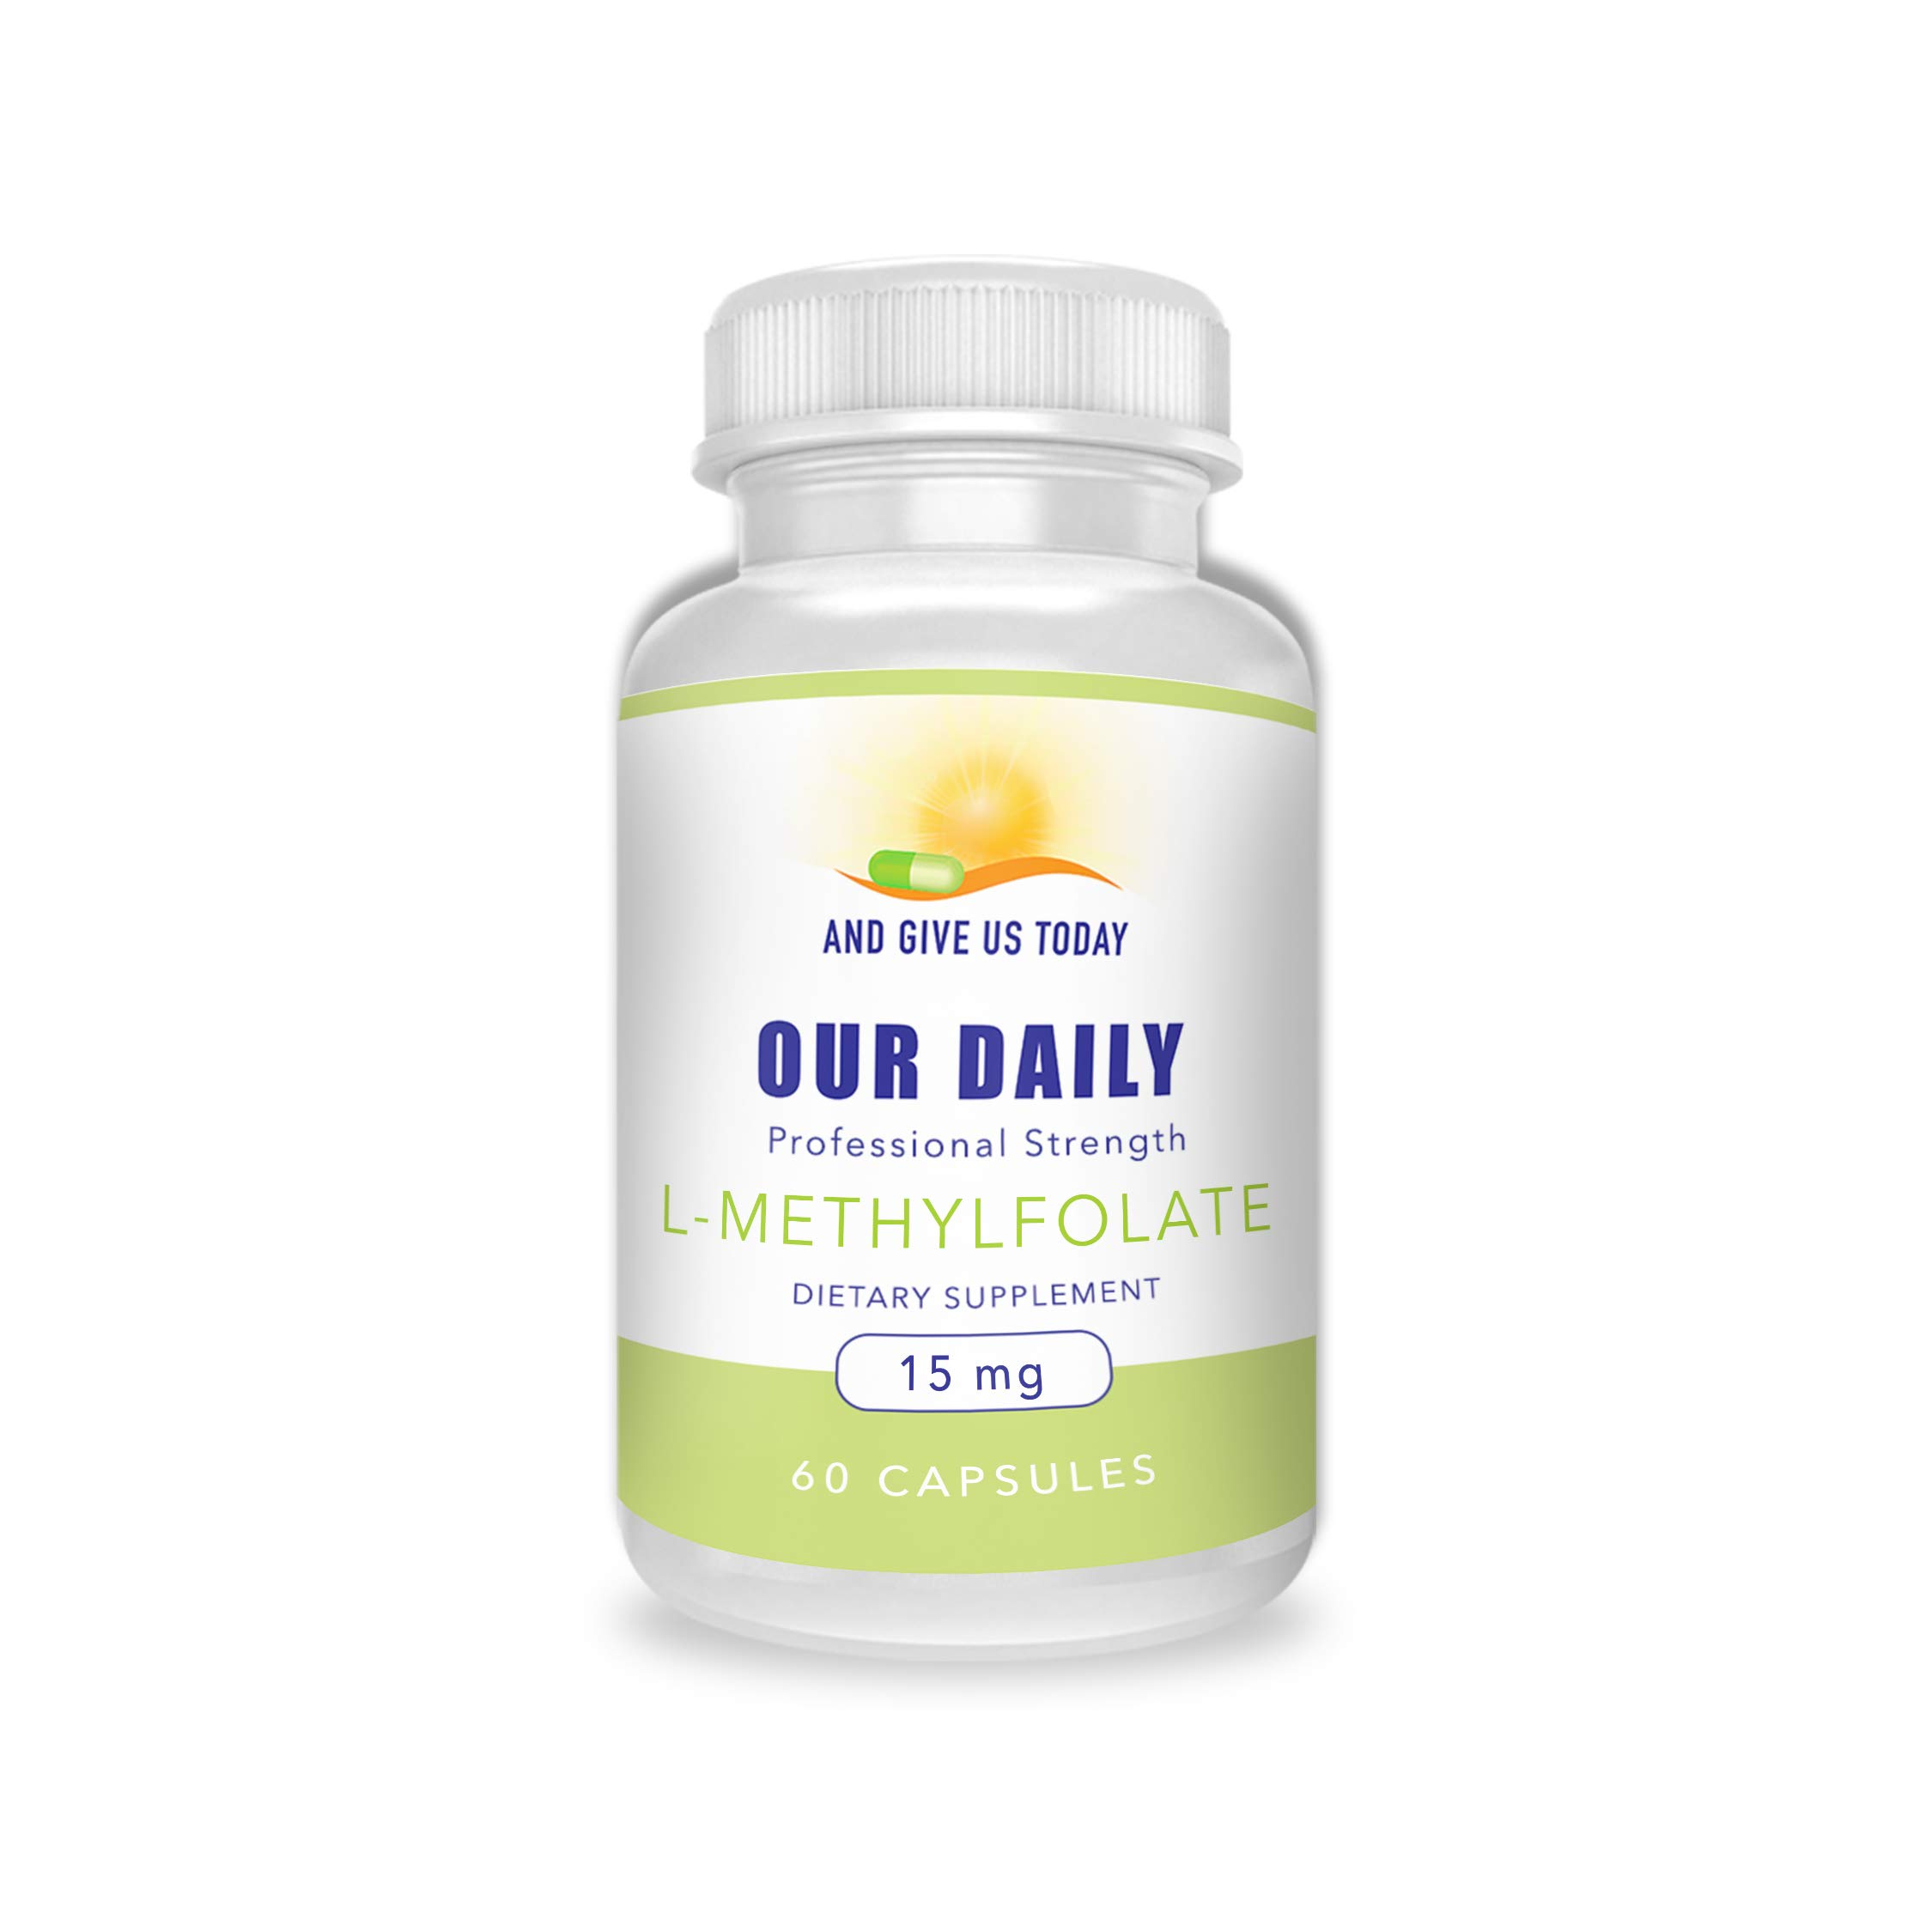 Our Daily Vites L-Methylfolate 15 mg / 15000 mcg Maximum Strength Active Folate, 5-MTHF, Filler Free, Gluten Free, Non-GMO, Vegetarian Capsules 60 Count (2 Month Supply) by Our Daily Vites